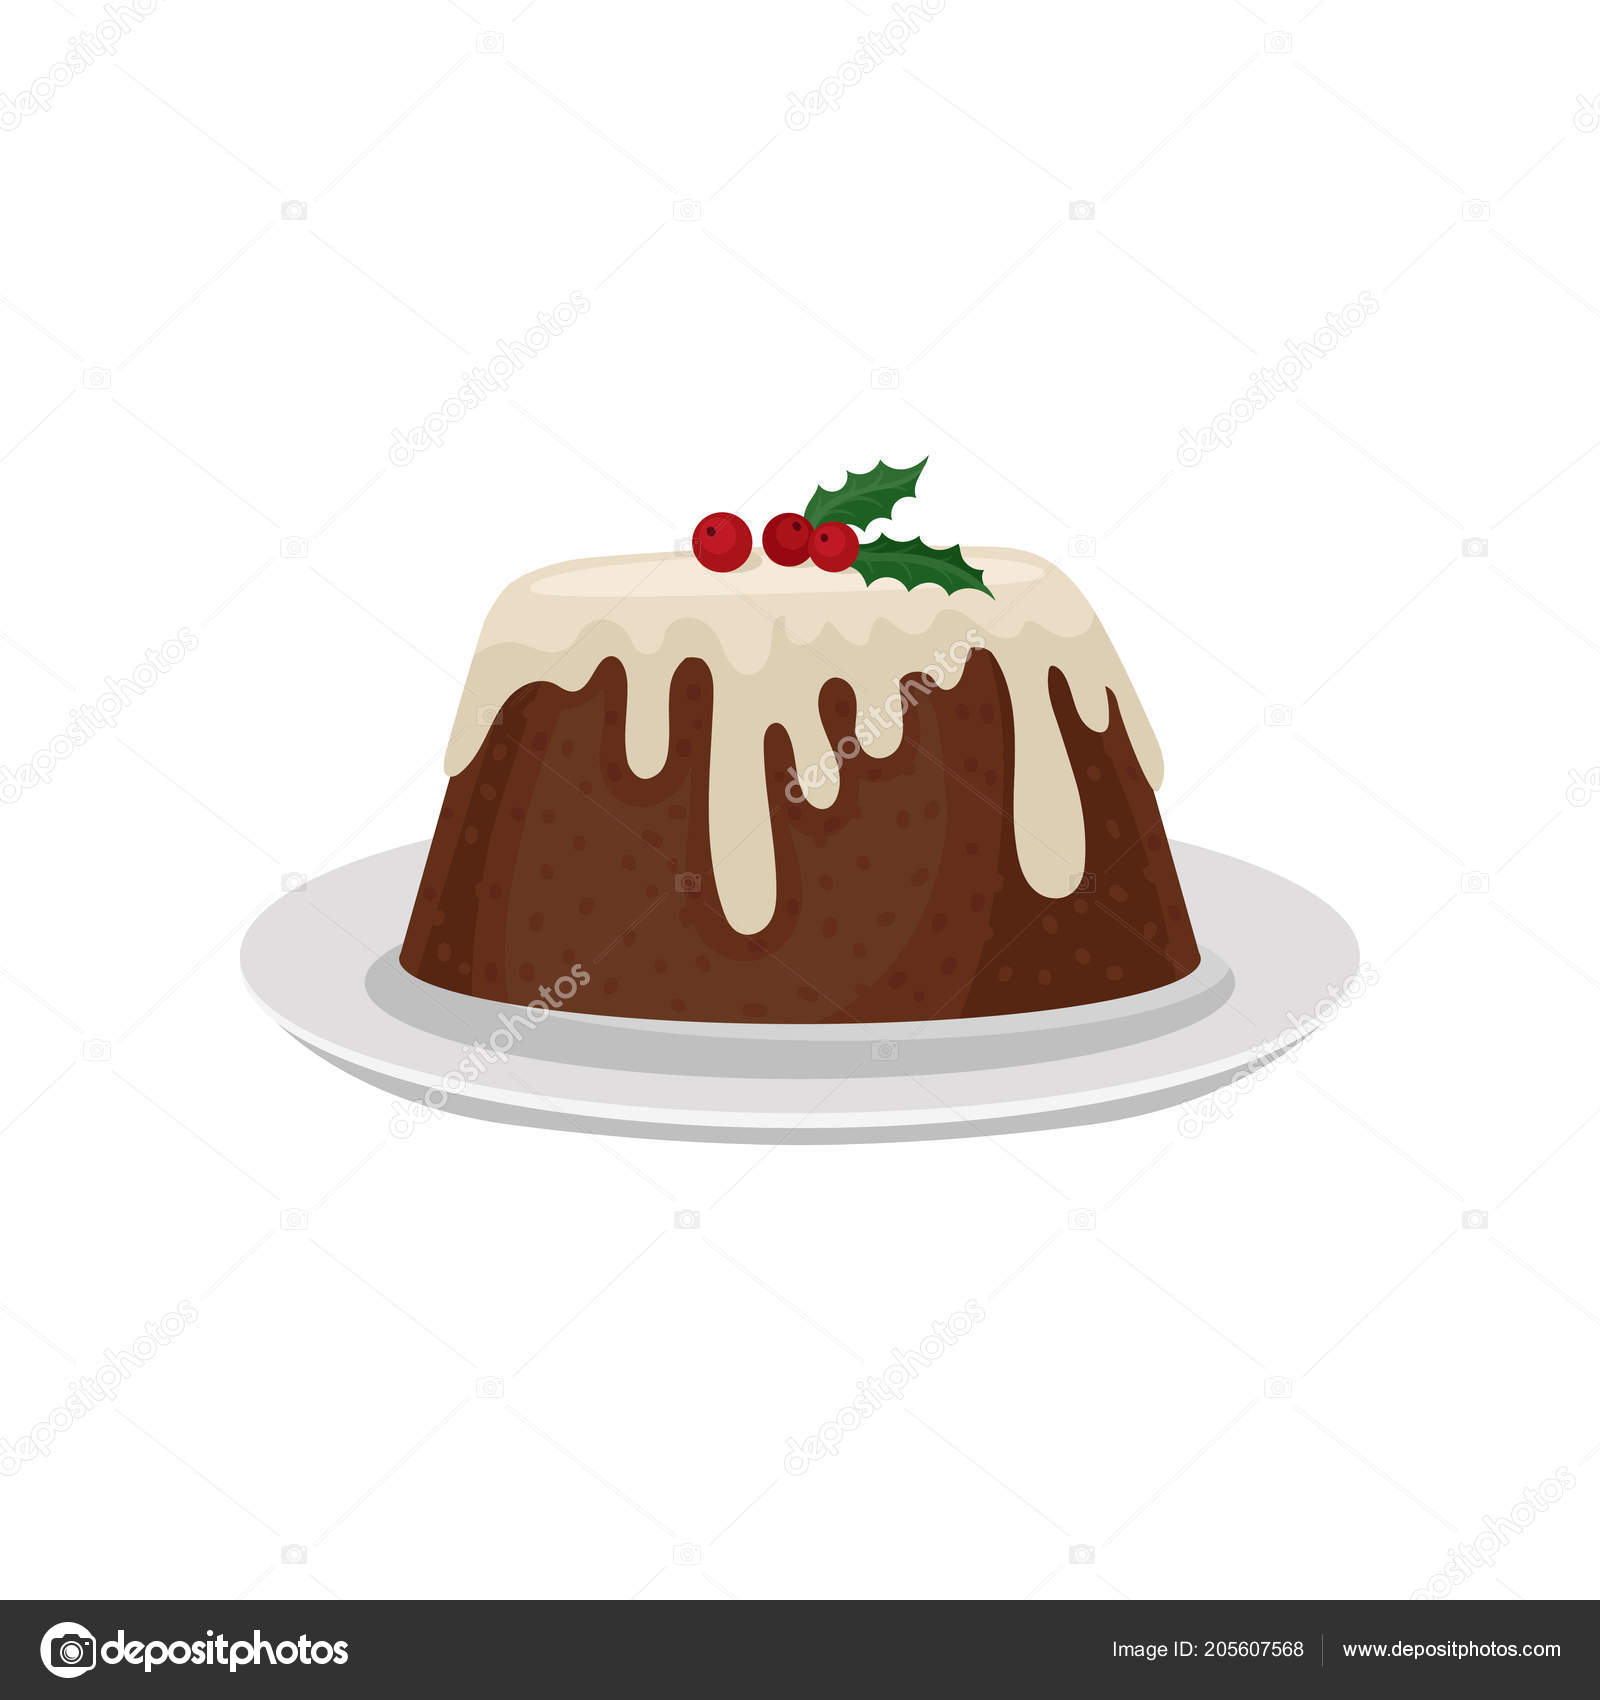 Christmas plum pudding decorated with red cranberry traditional traditional dessert of english cuisine sweet food colorful graphic element for menu or recipe book flat vector illustrations isolated on white forumfinder Image collections